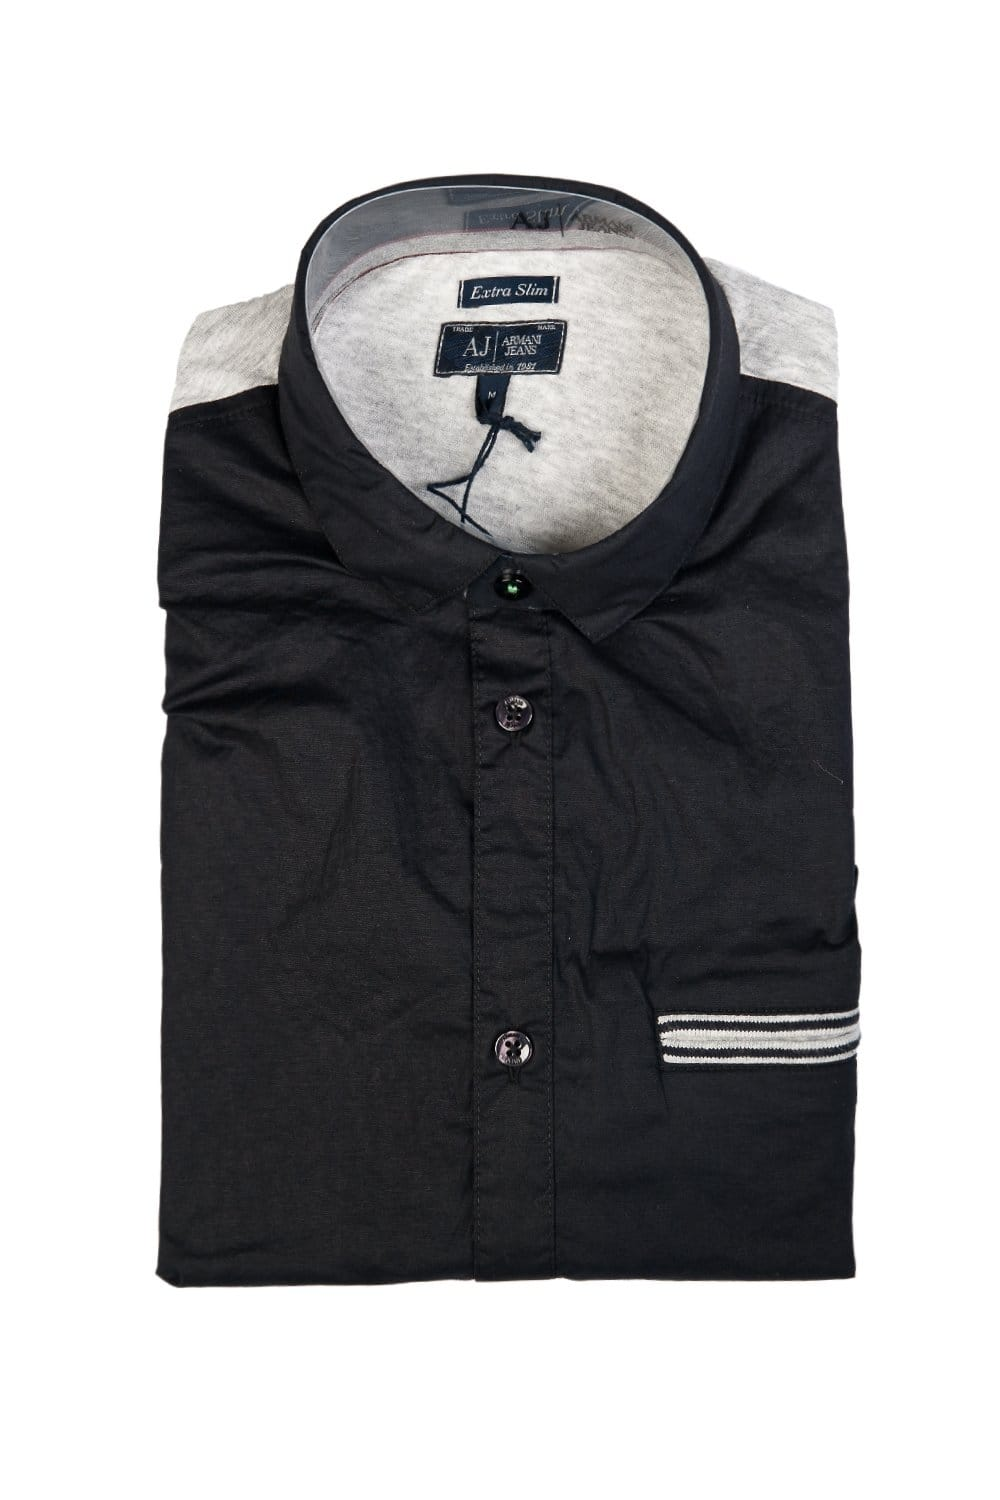 Armani aj extra slim fit shirt in white and navy blue for Extra trim fit dress shirt